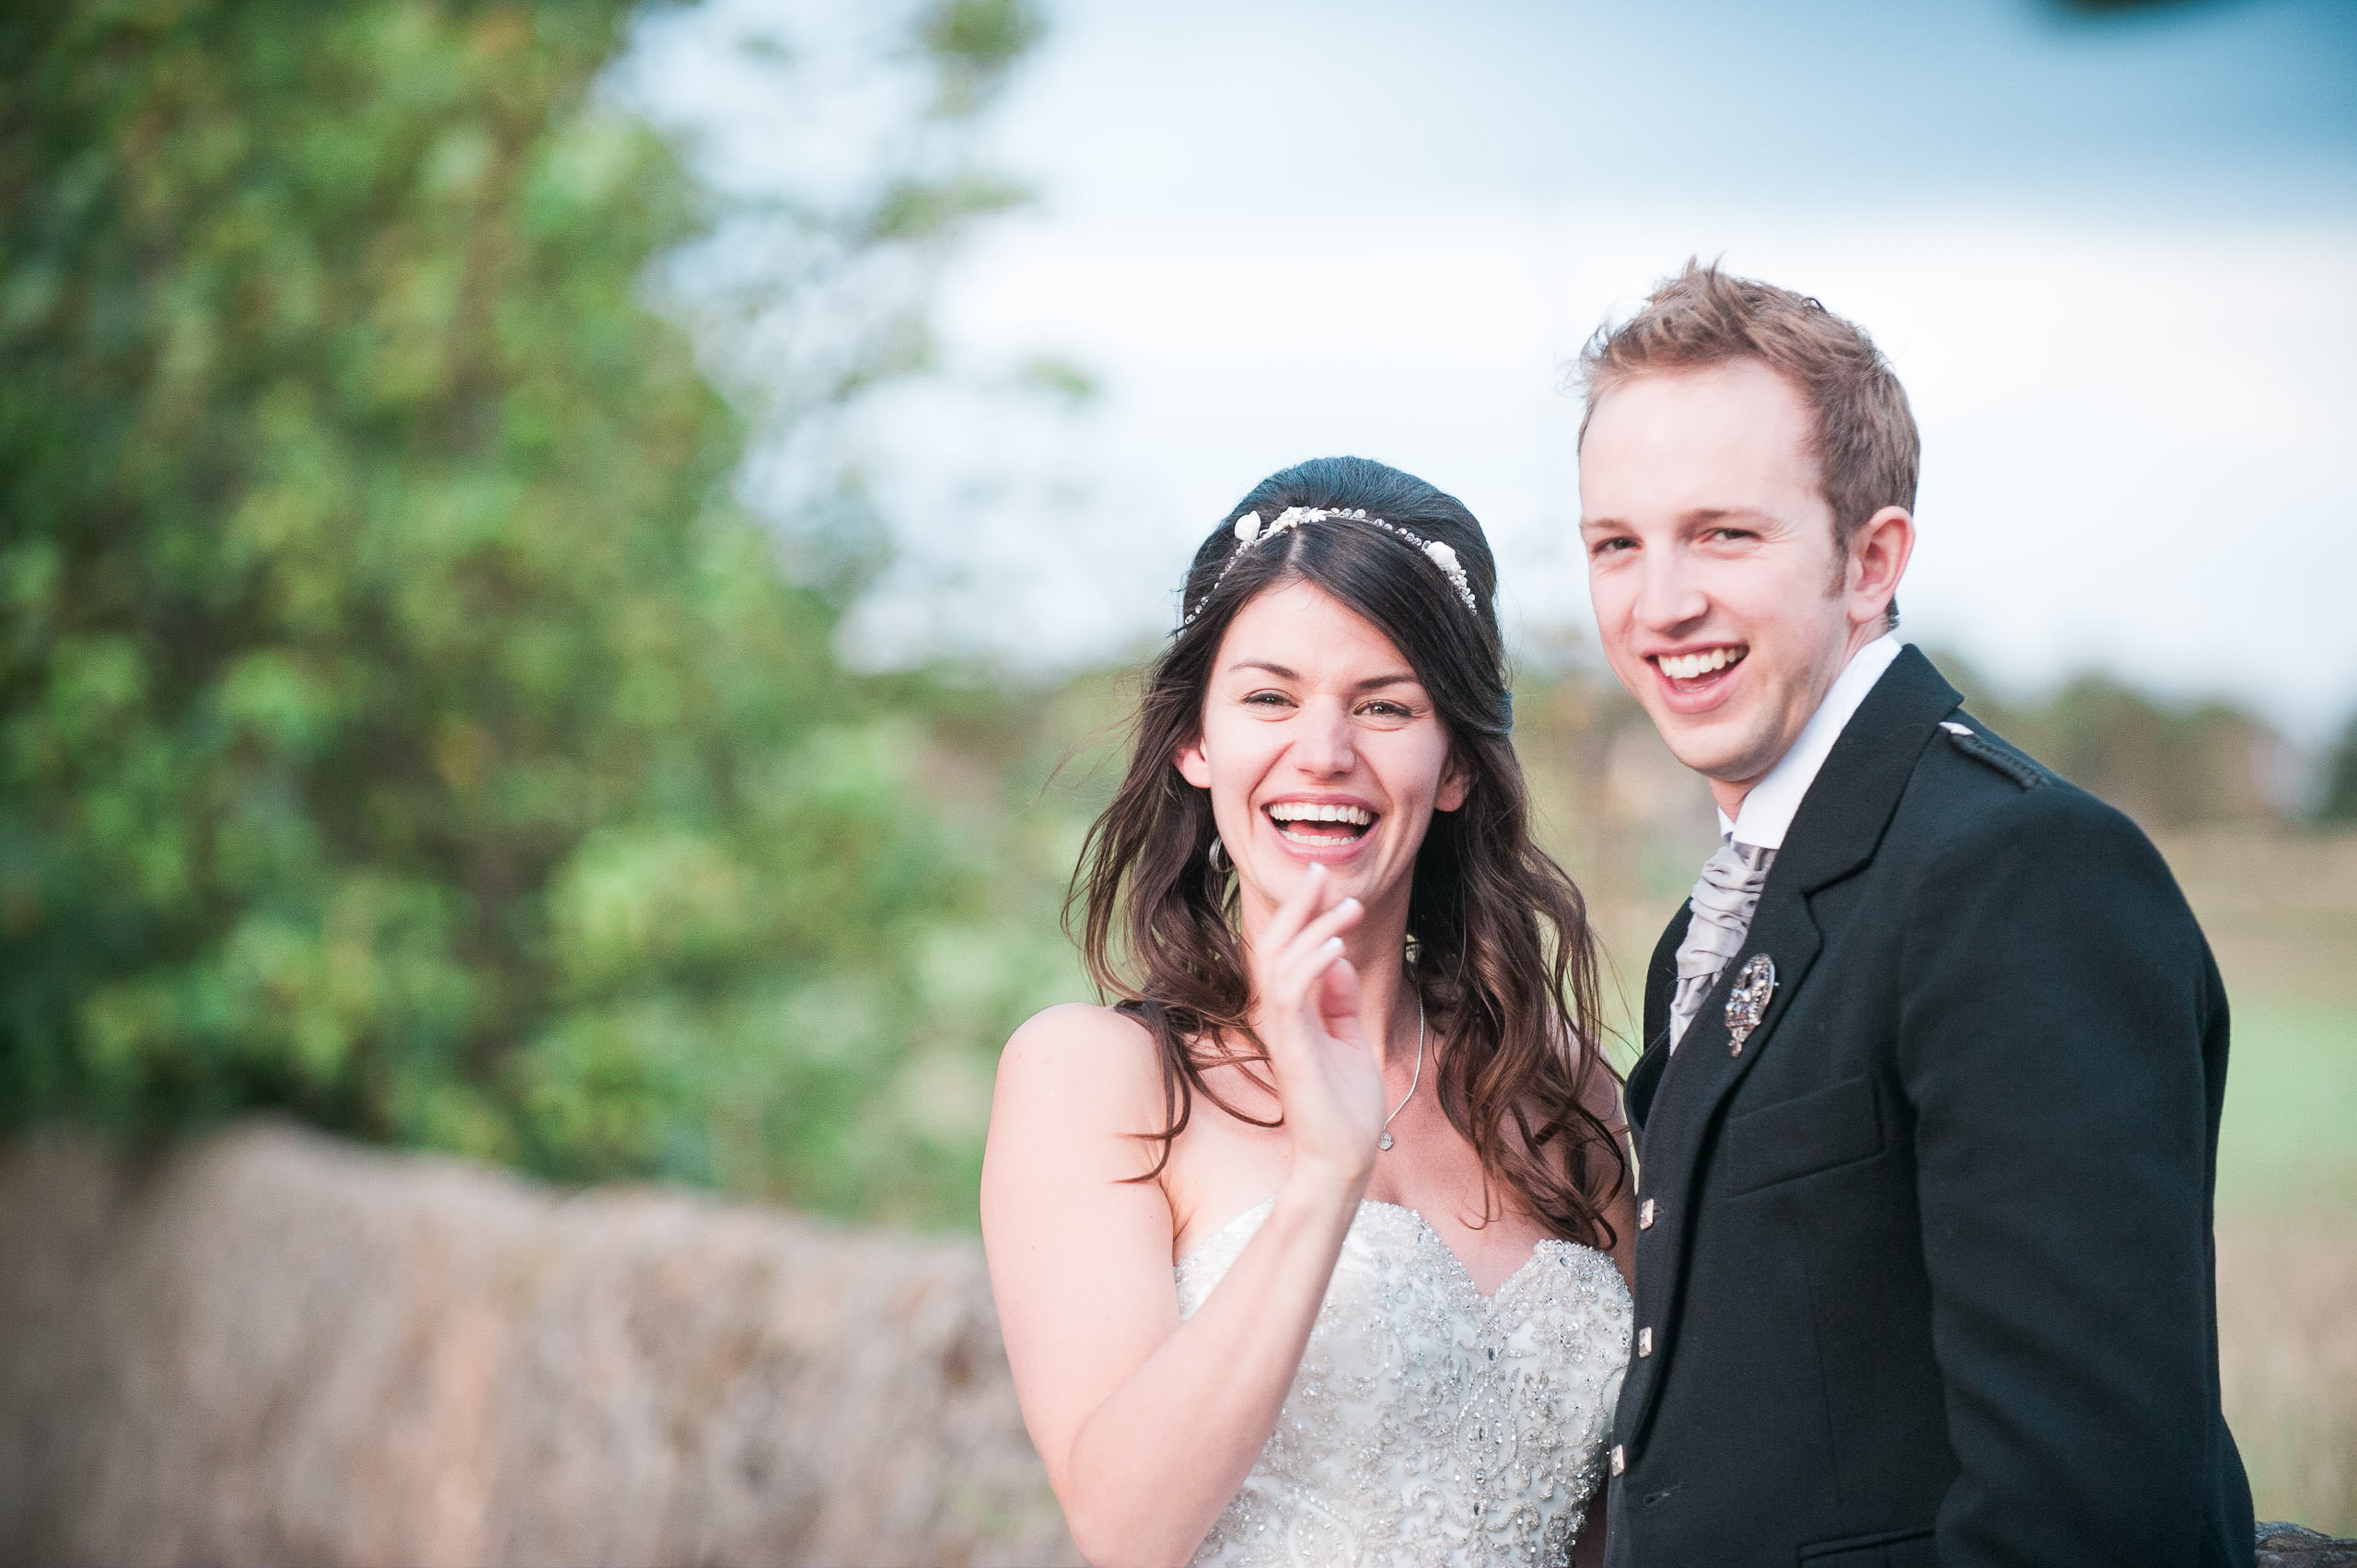 happy, relaxed bride and groom at Ayrshire wedding by the beach